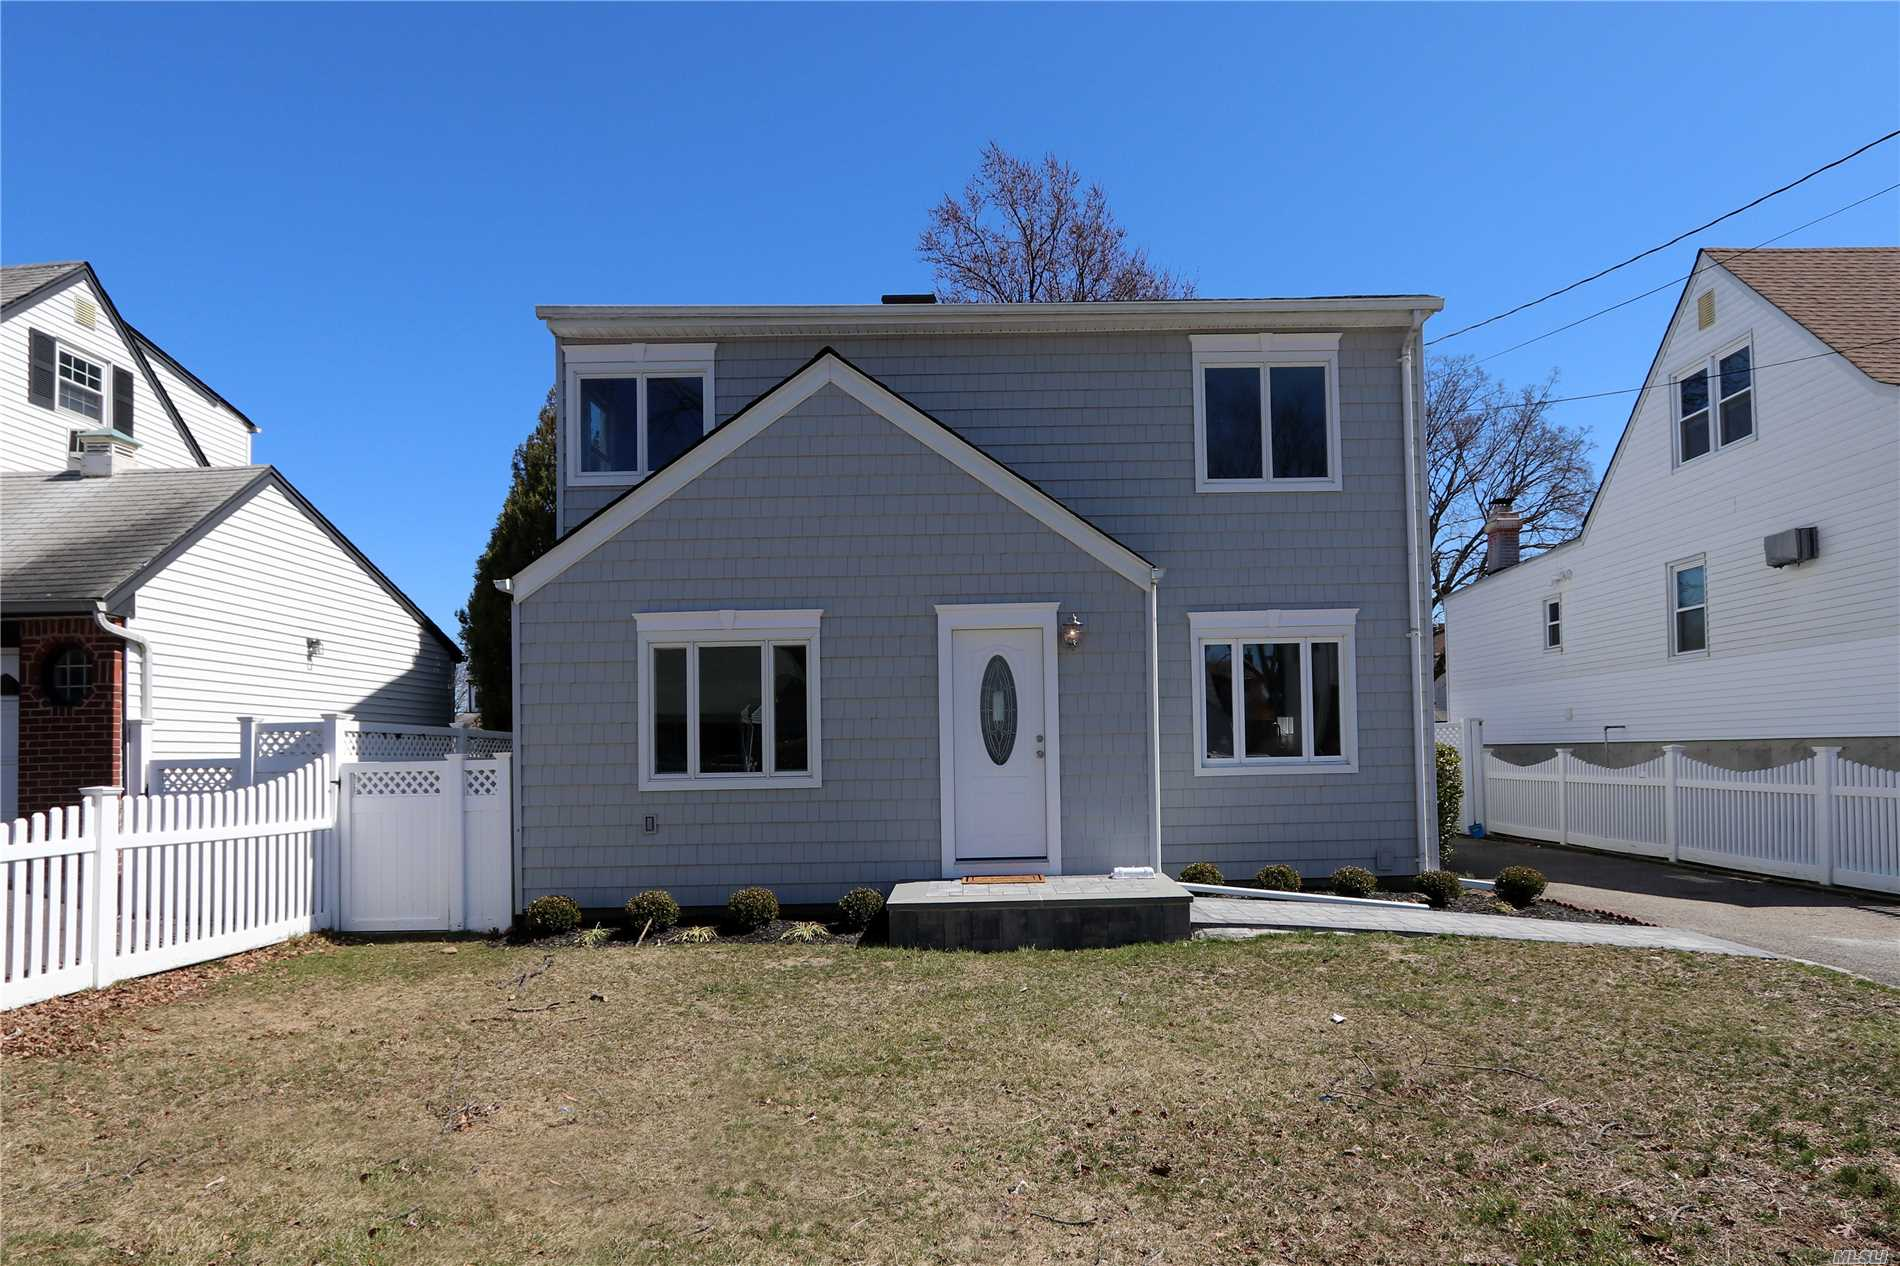 Beautiful renovated 4 BR colonial in South Seaford. This home features an Open Concept, beautiful kitchen with grunite counters stainless steel appliances hardwood floors, new bathrooms and Trex Deck. House is Move-In ready. Flood Zone AE -- All you need to do is unpack!!